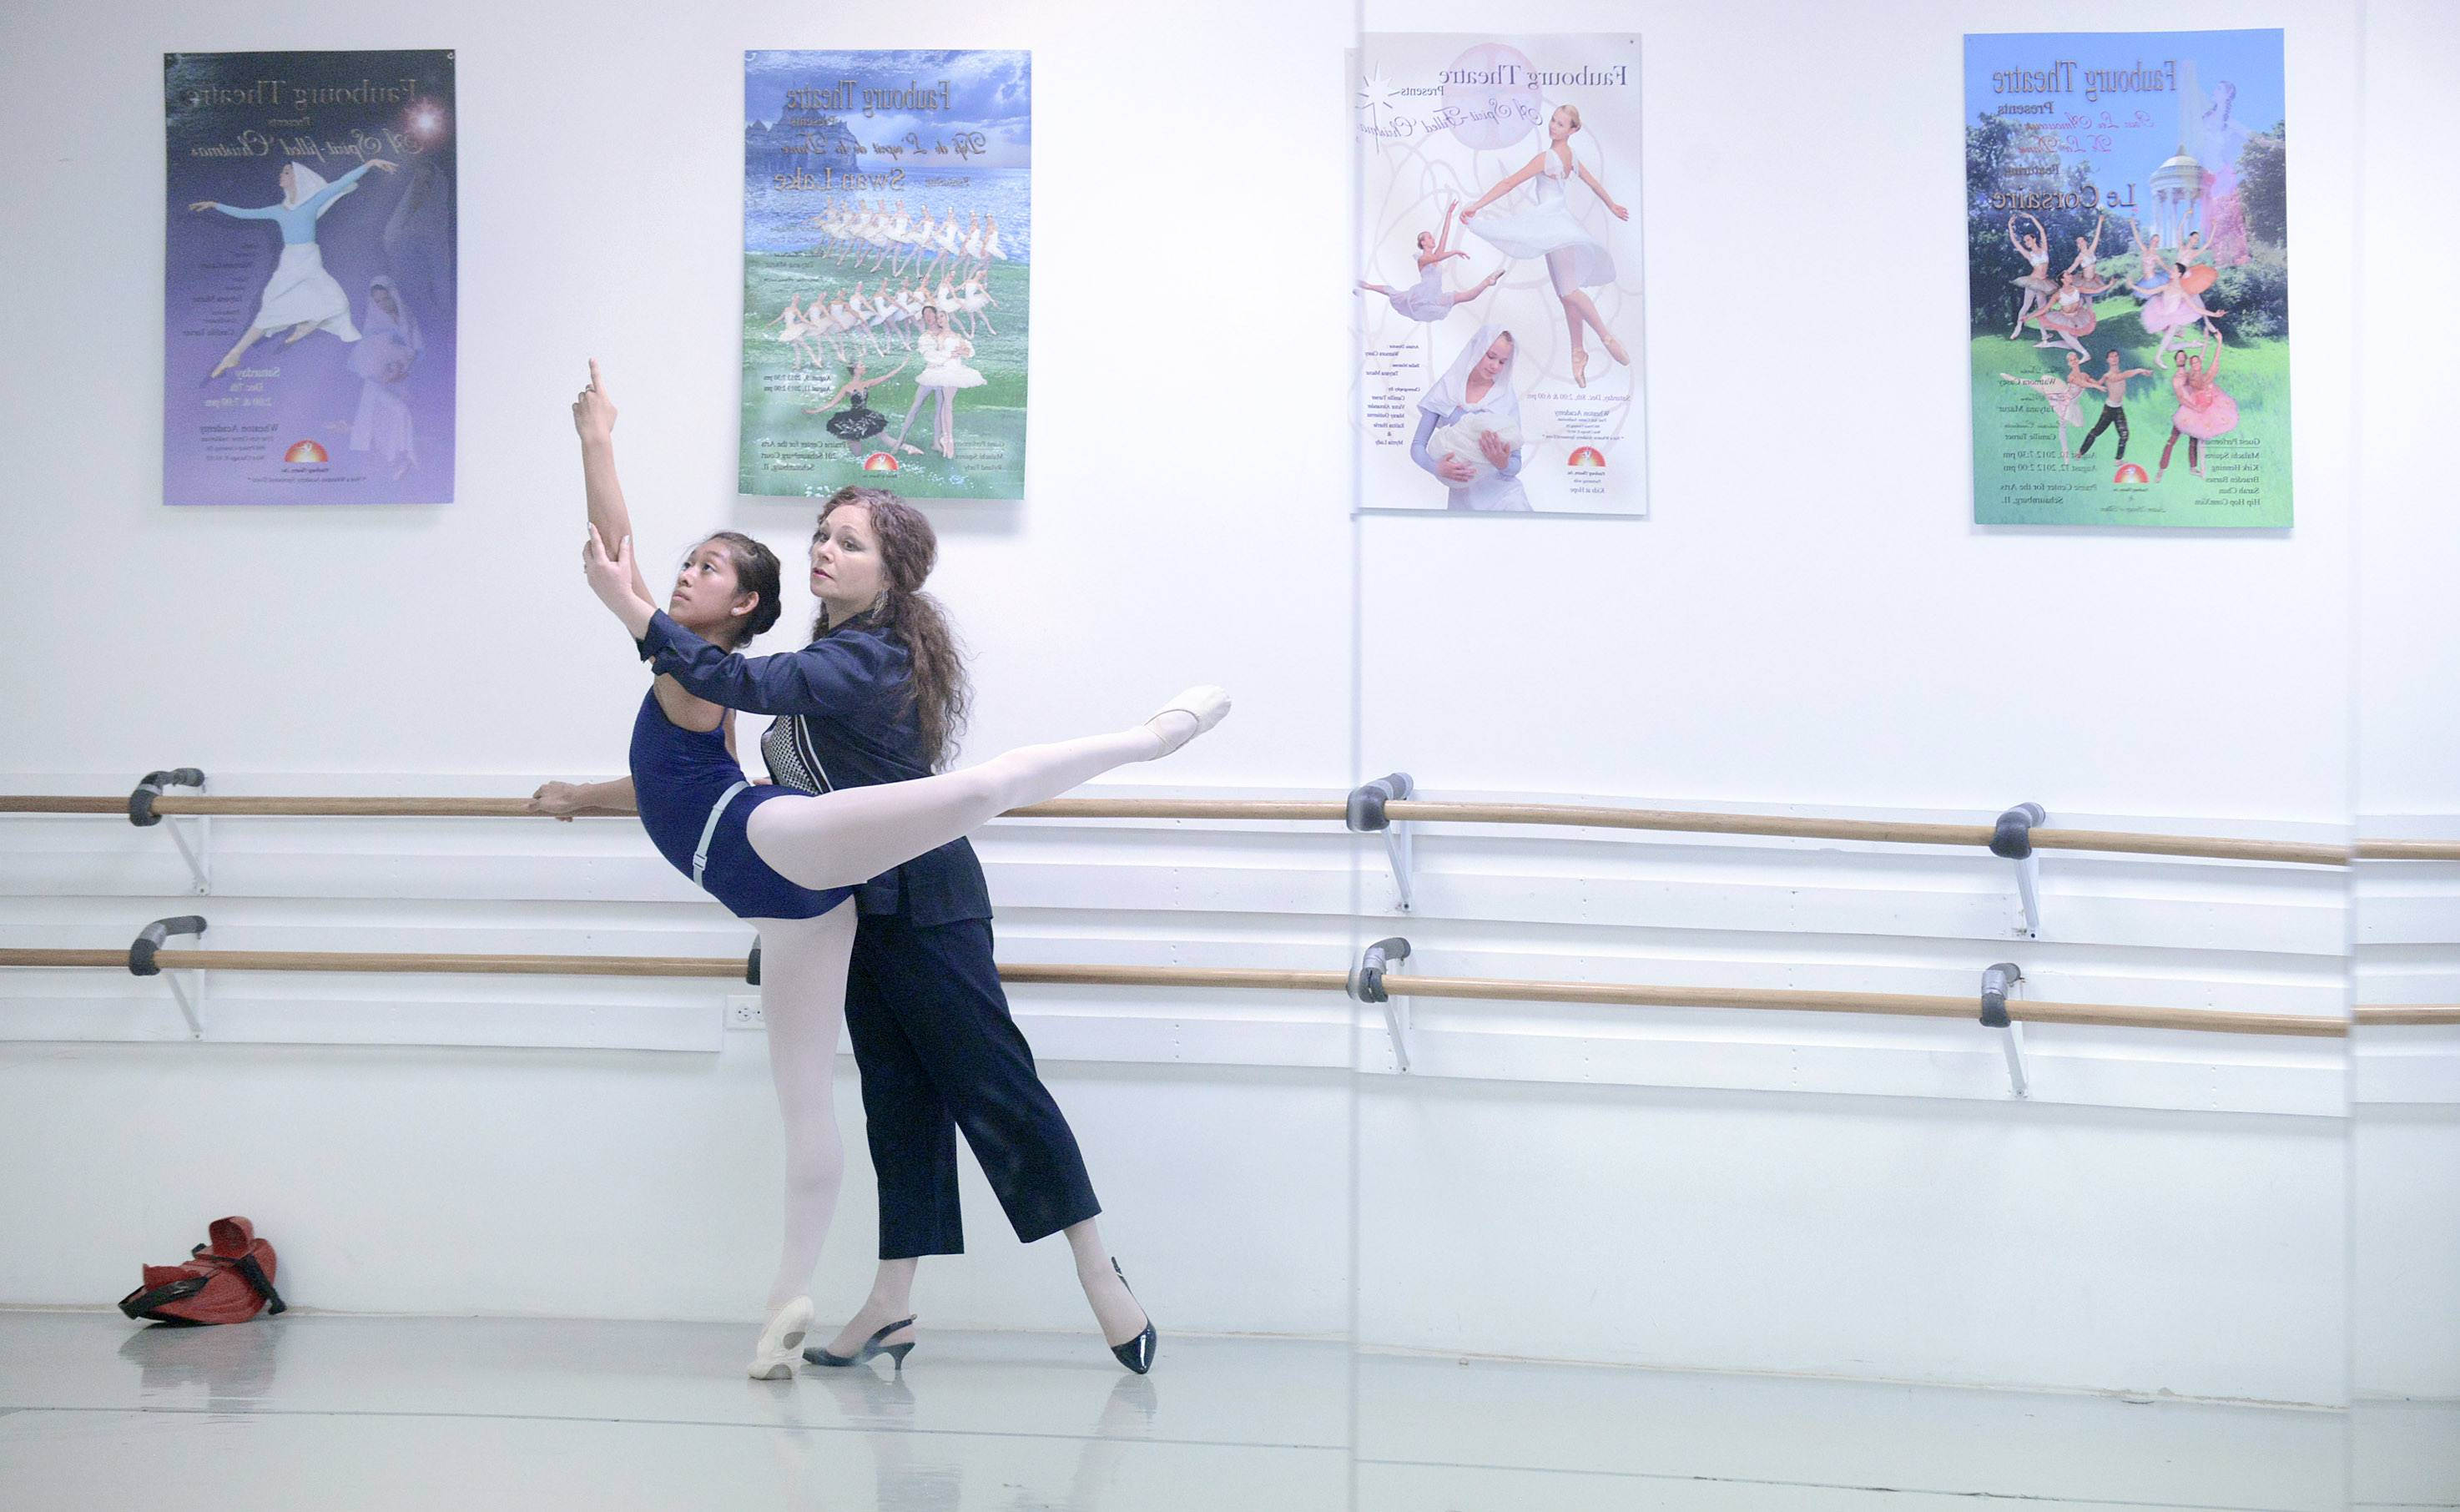 Dancer Jasmine Getz of Sleepy Hollow, a student at Hampshire High School, with her ballet instructor, Tatyana Mazur, at the Faubourg School of Ballet in Hanover Park.